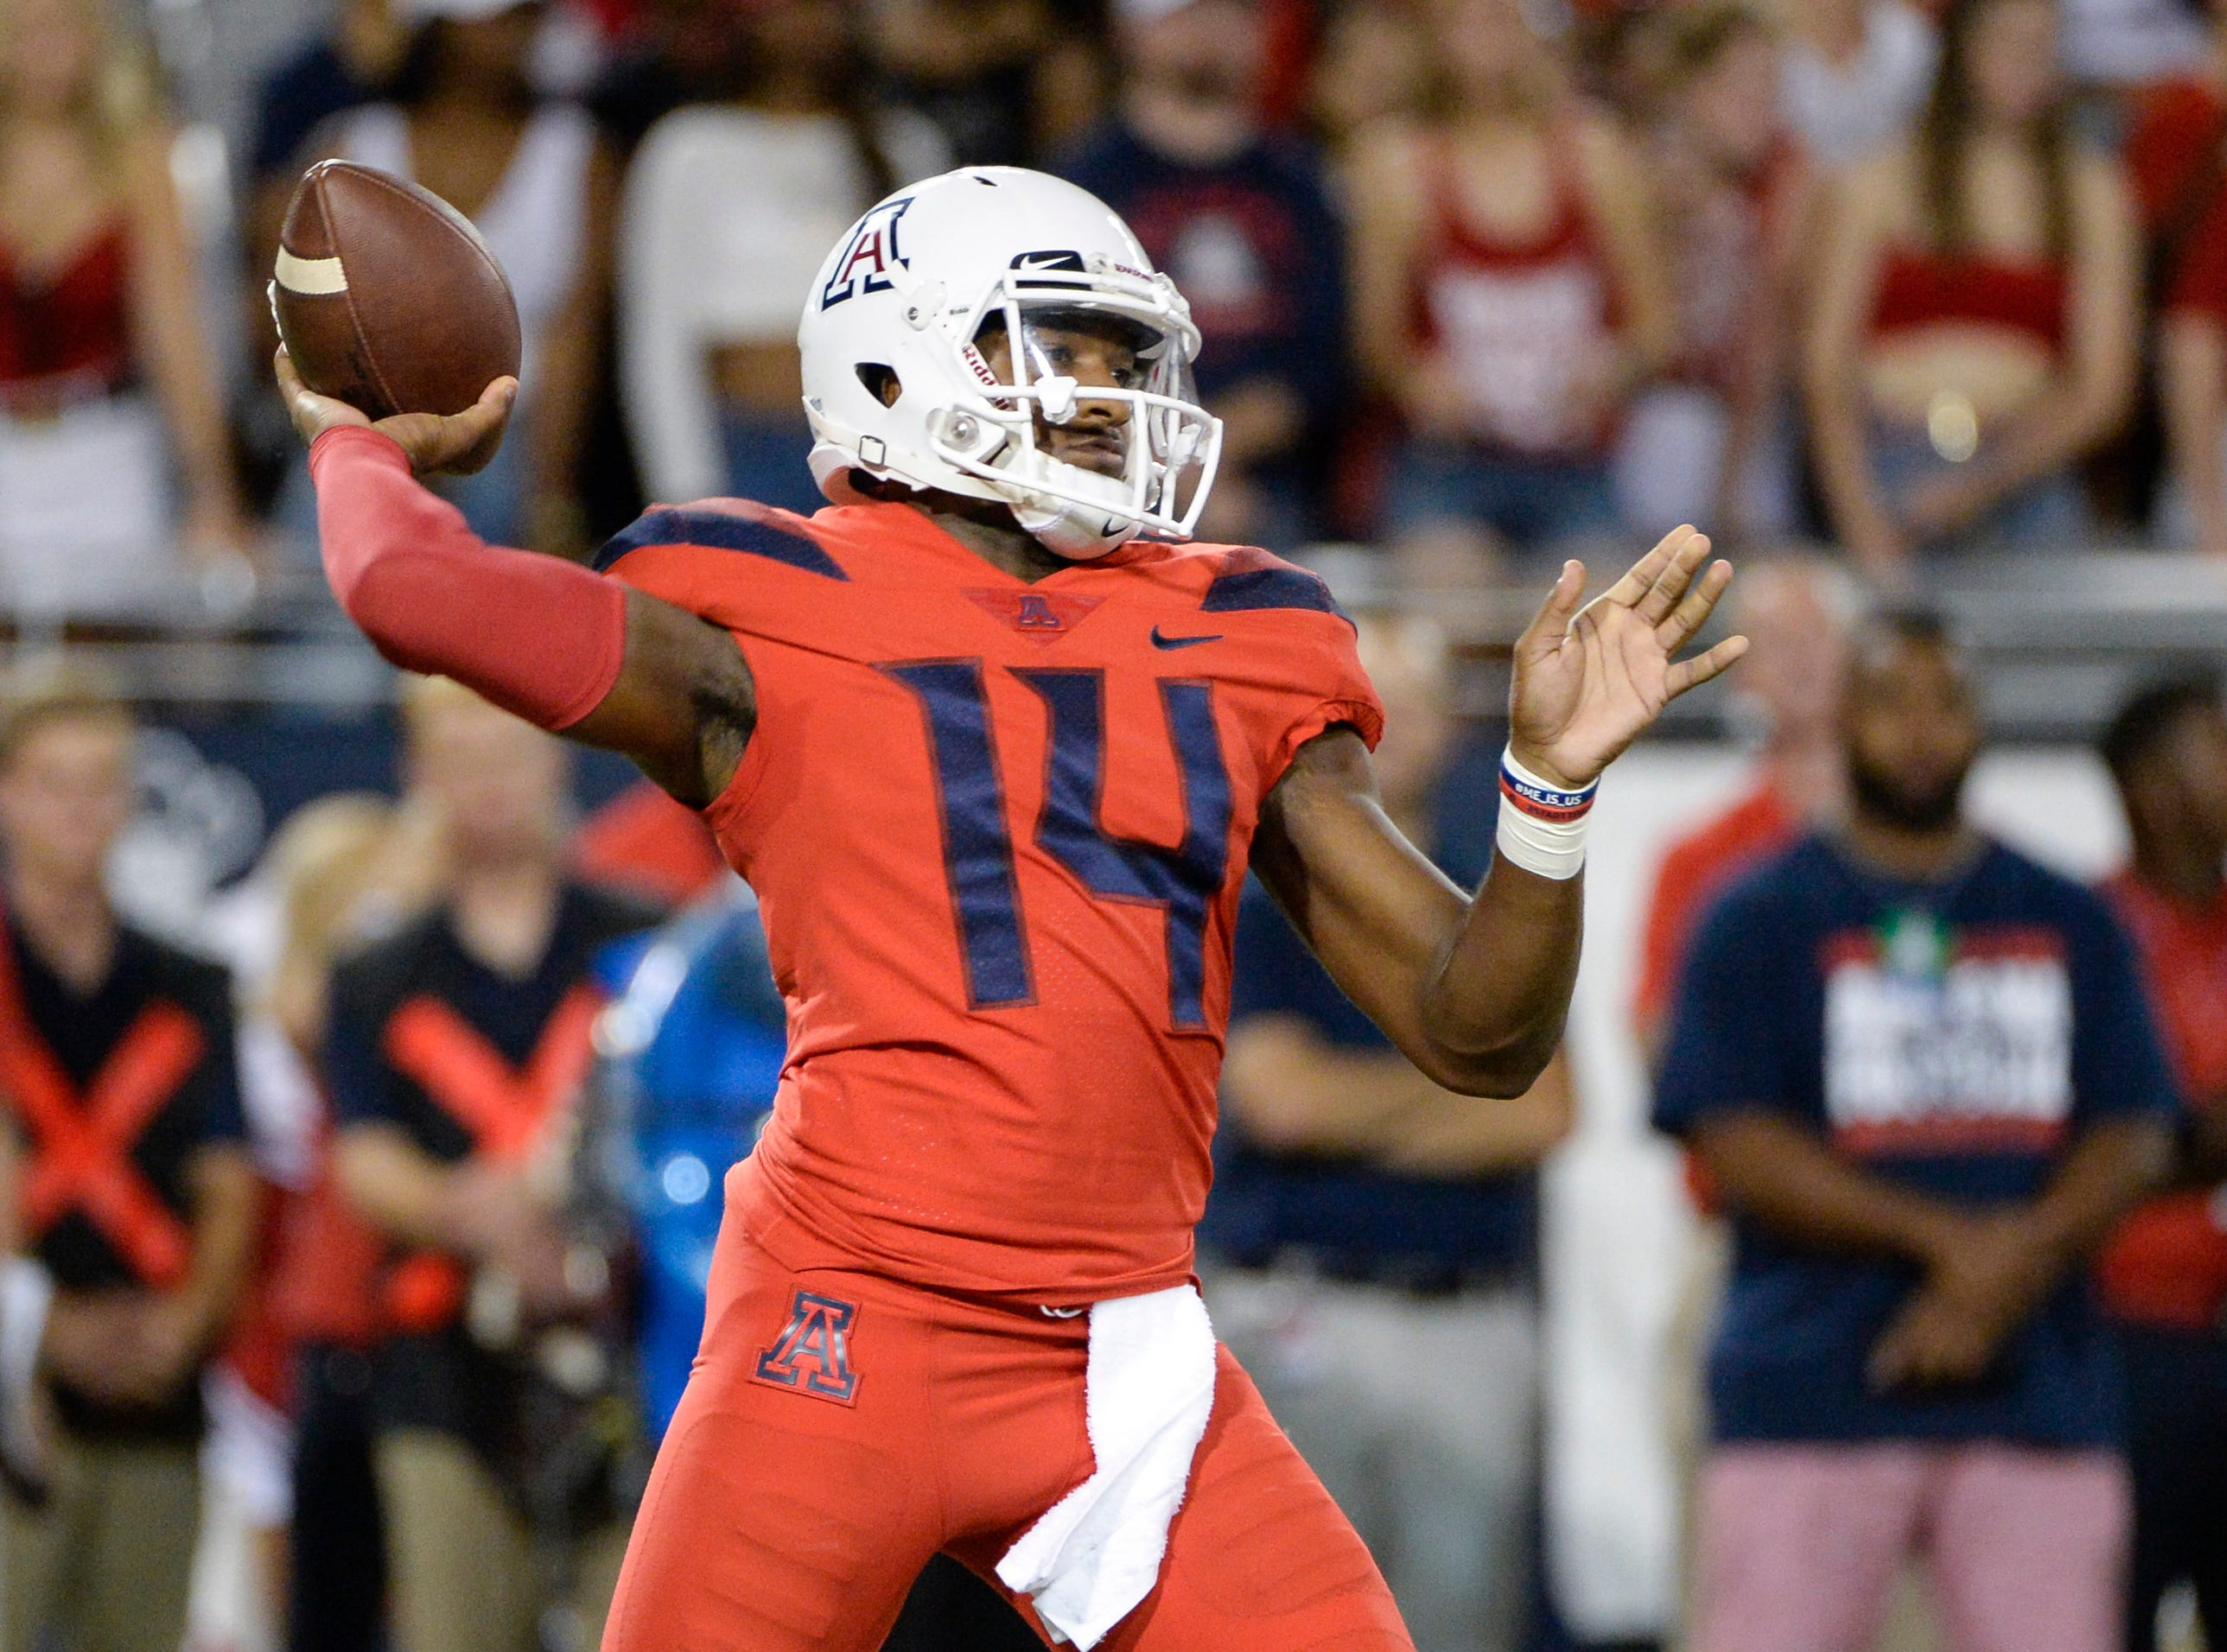 Sep 1, 2018; Tucson, AZ, USA; Arizona Wildcats quarterback Khalil Tate (14) passes the ball against the Brigham Young Cougars during the first quarter at Arizona Stadium.